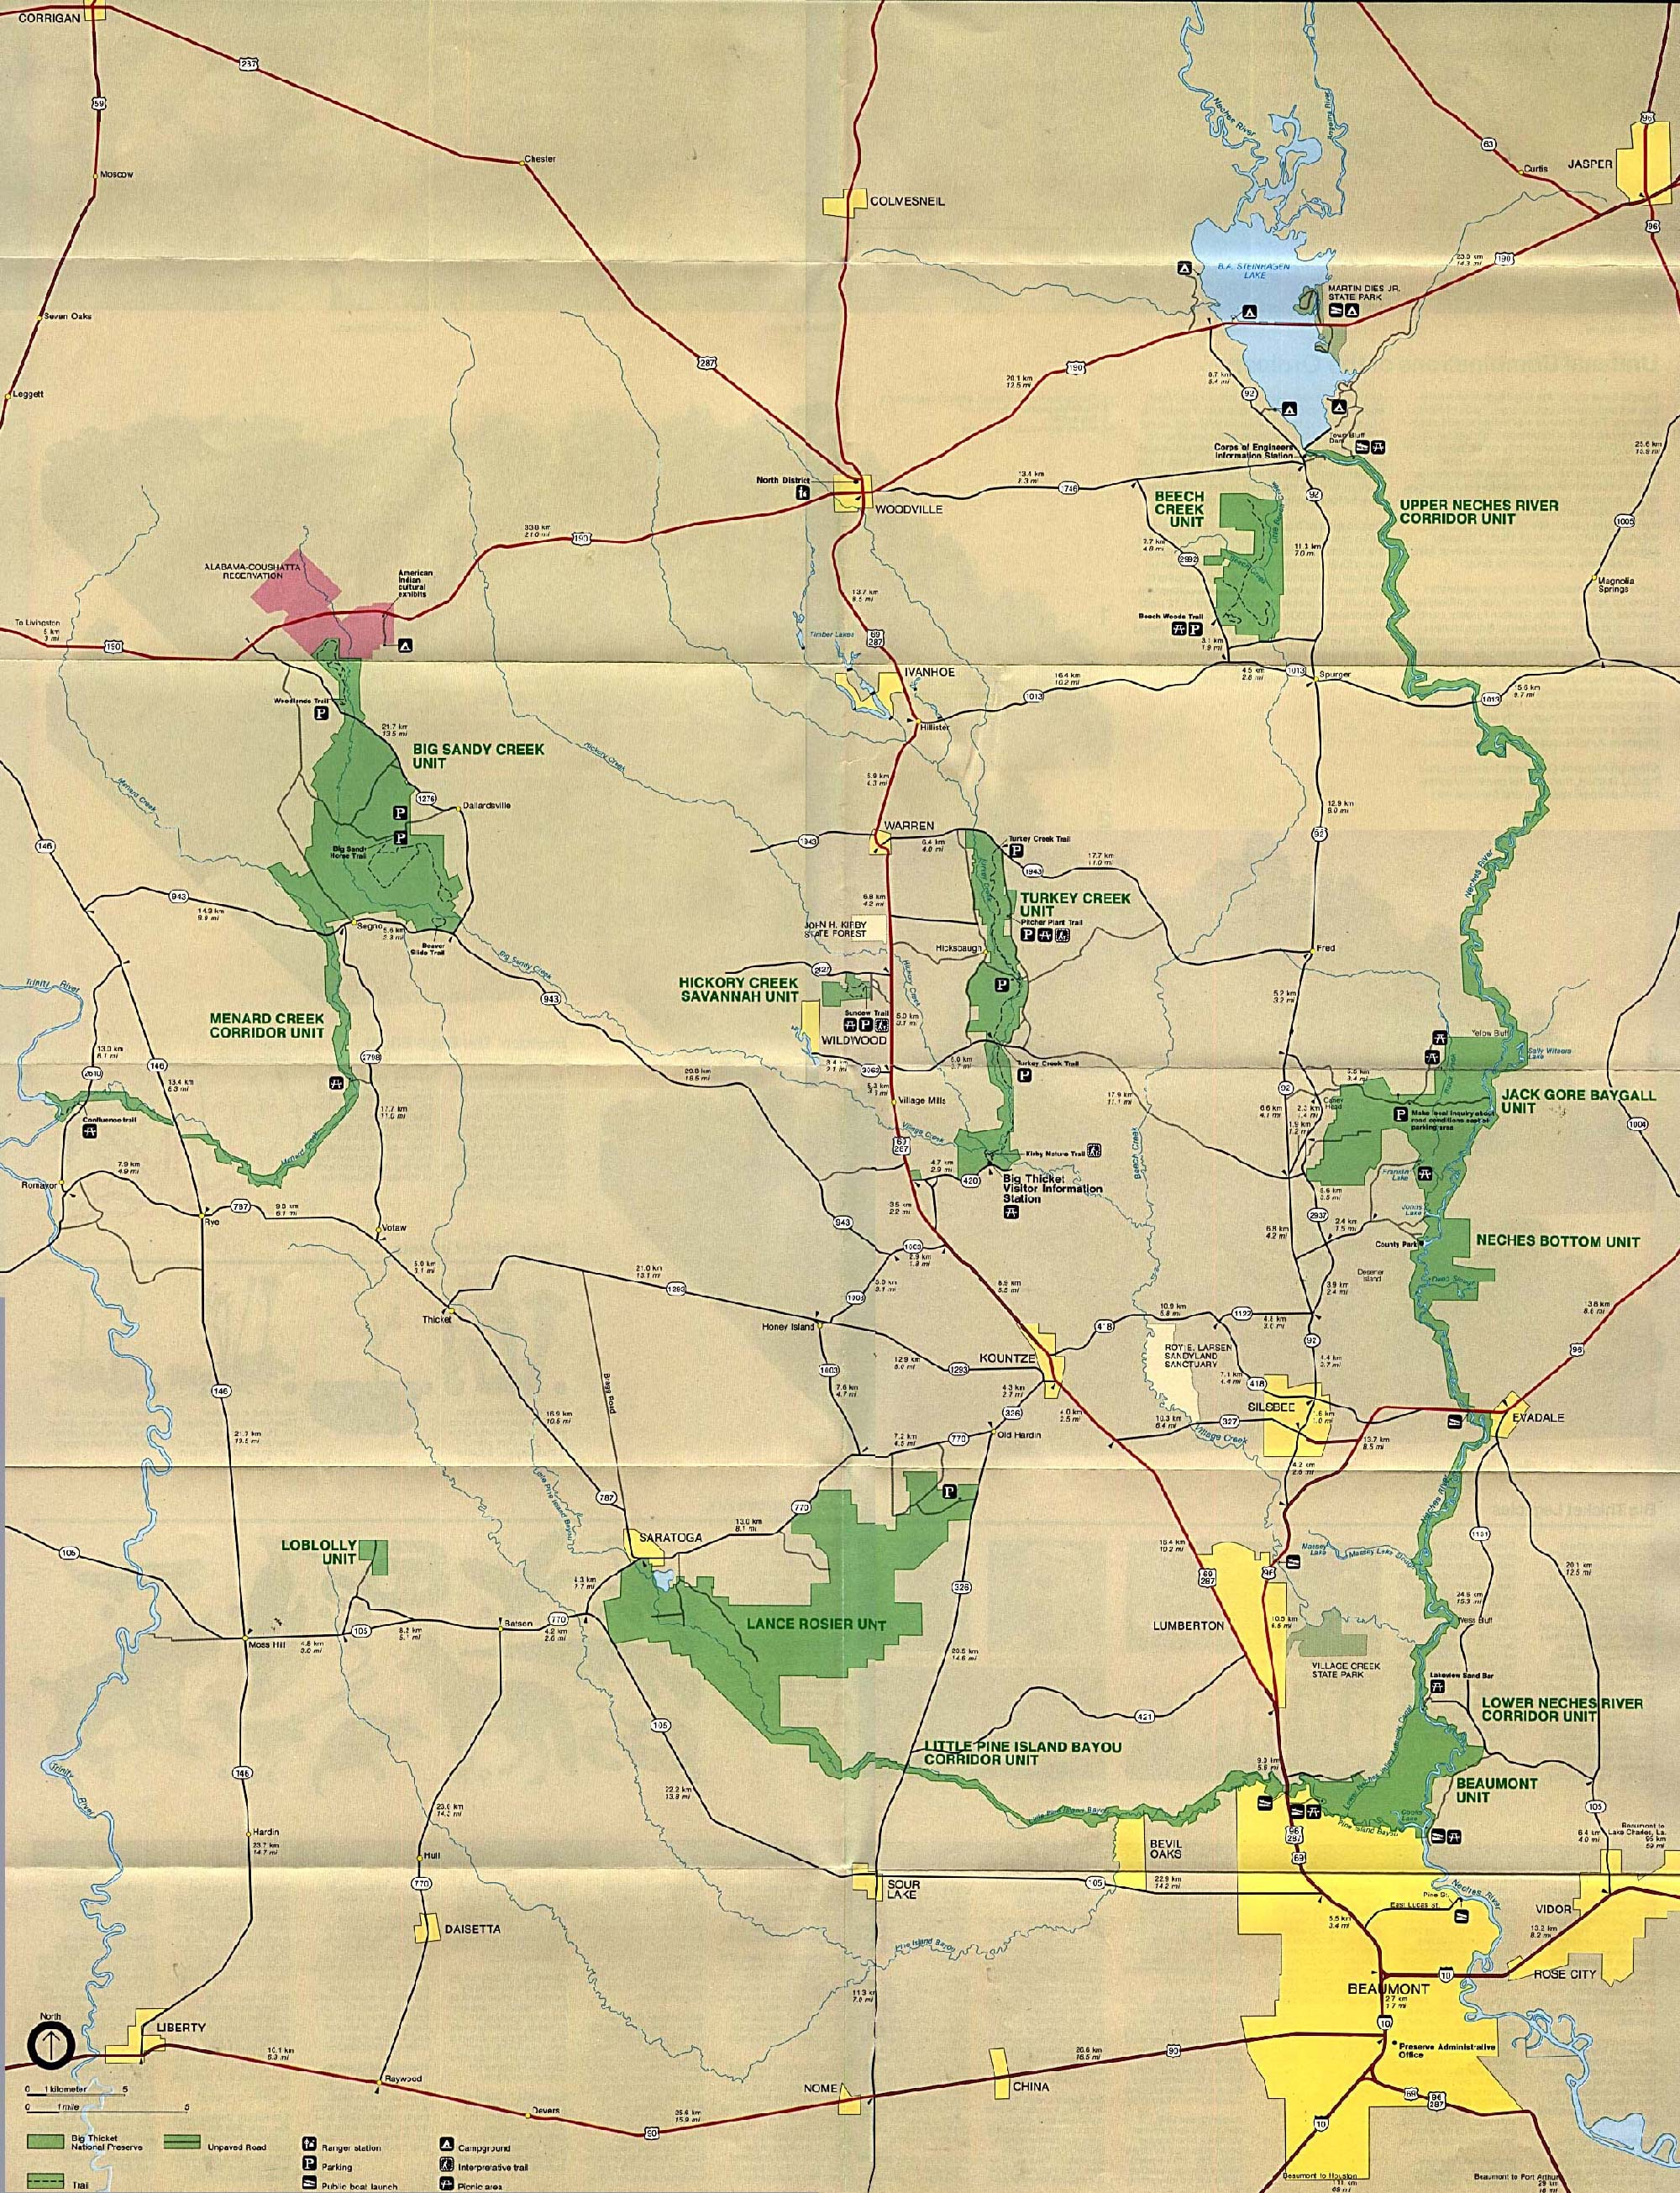 Texas State And National Park Maps - Perry-Castañeda Map Collection - Johnson City Texas Map